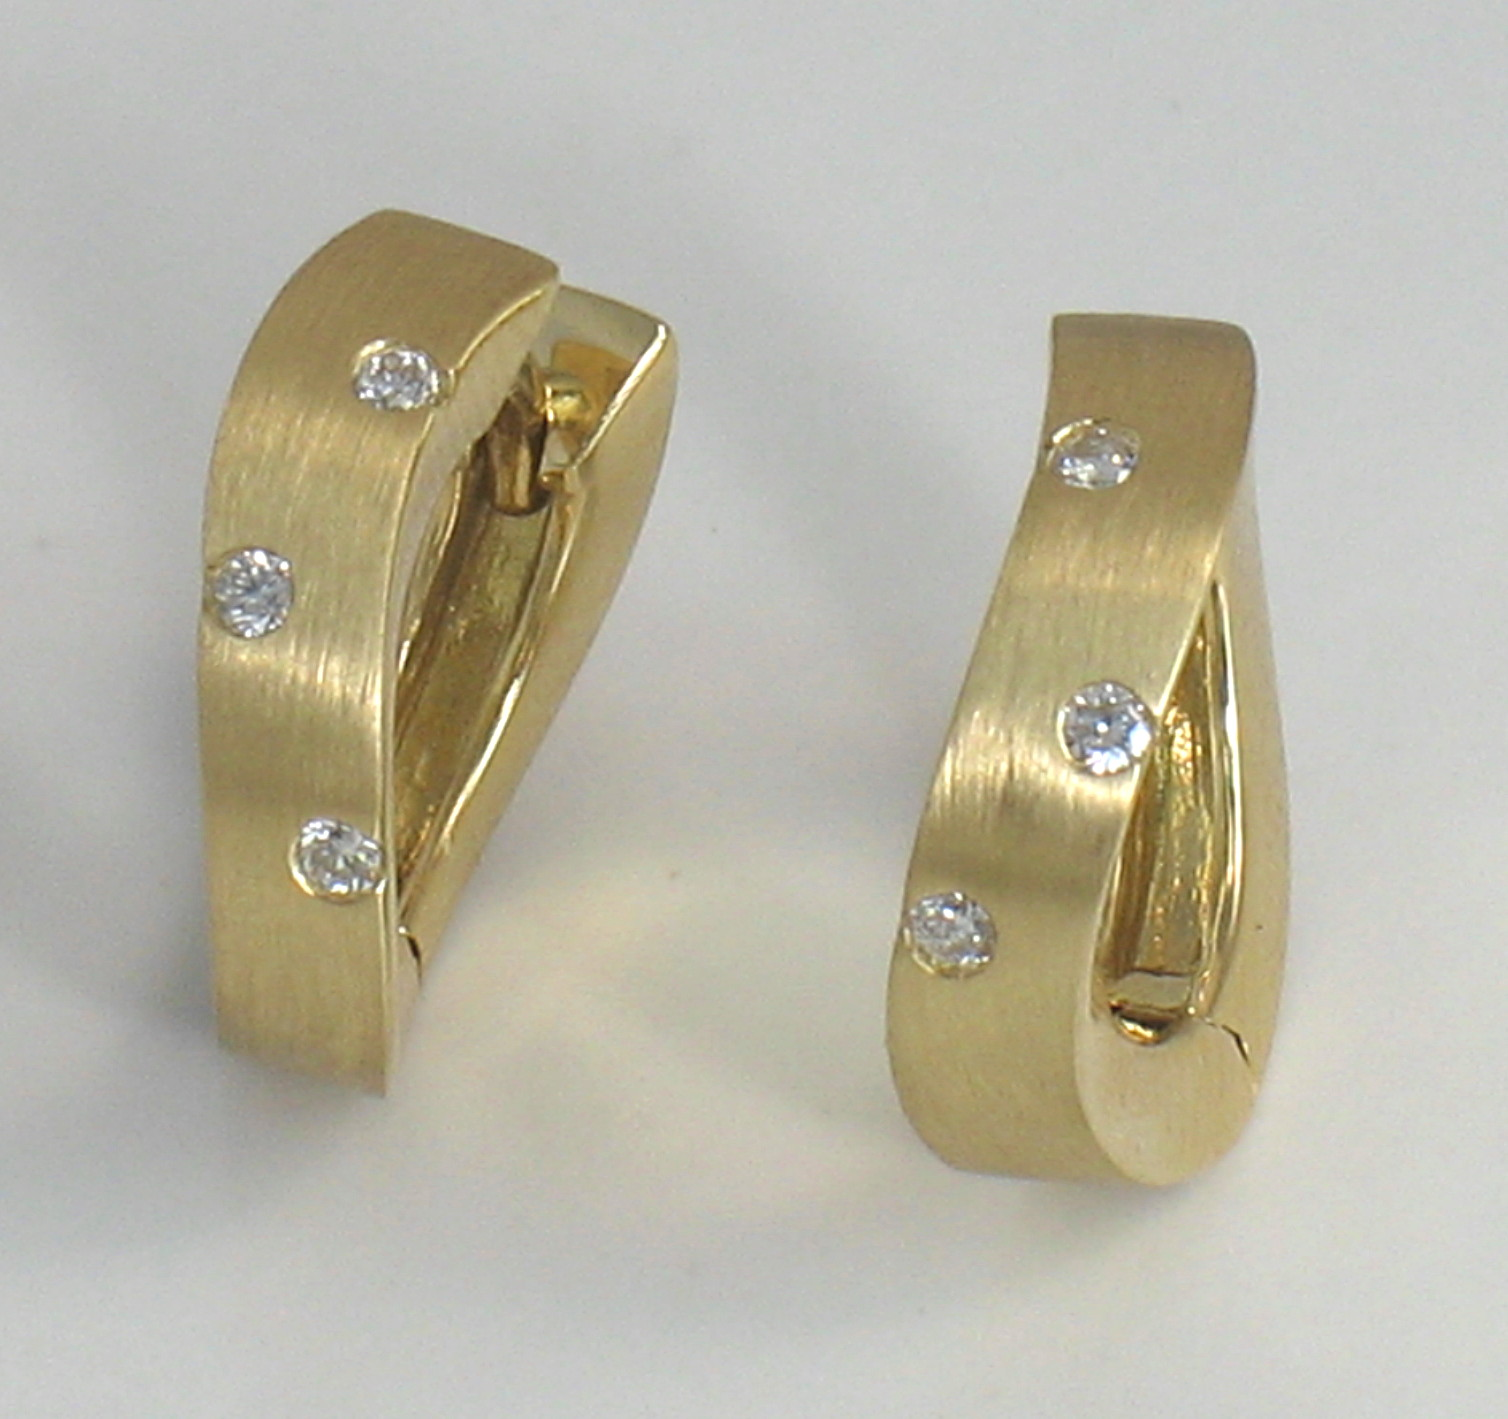 Wavy Brushed-Finsih Huggie Diamond Earrings